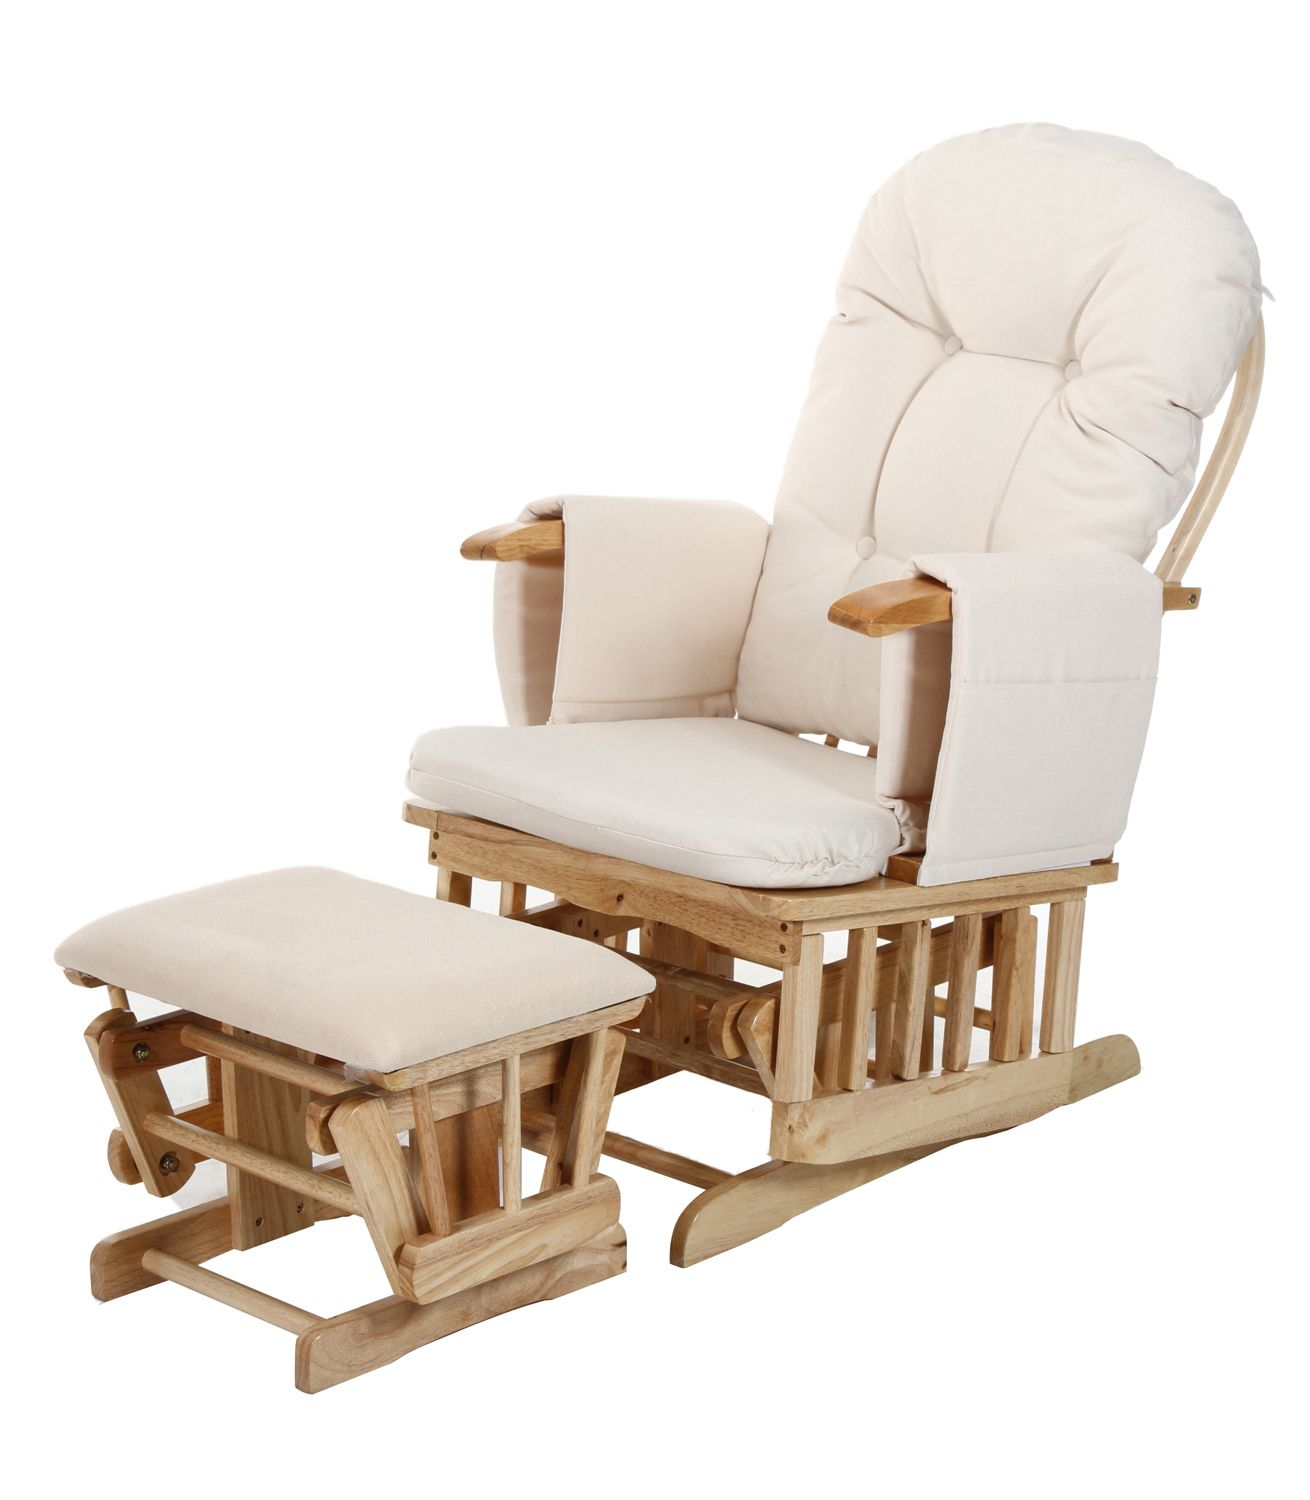 Baby Nursing Chair Buy Your Baby Weavers Recline Glider And Stool From